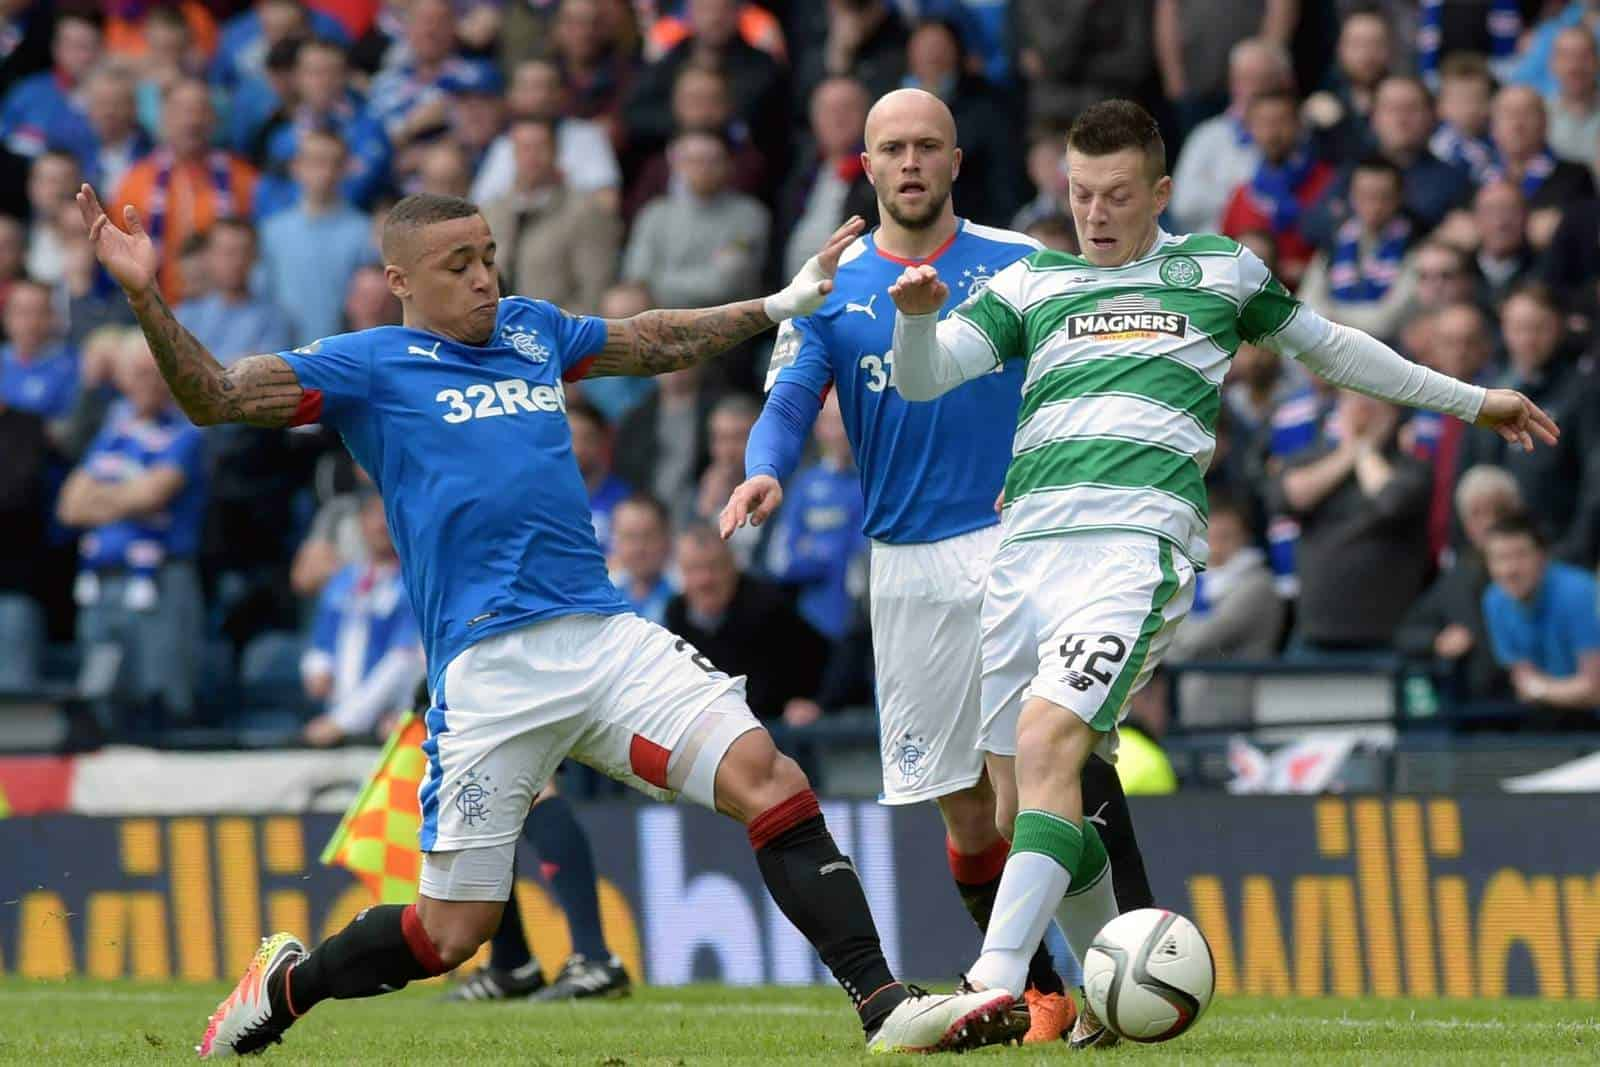 11-03-2018 – Rangers vs Celtic